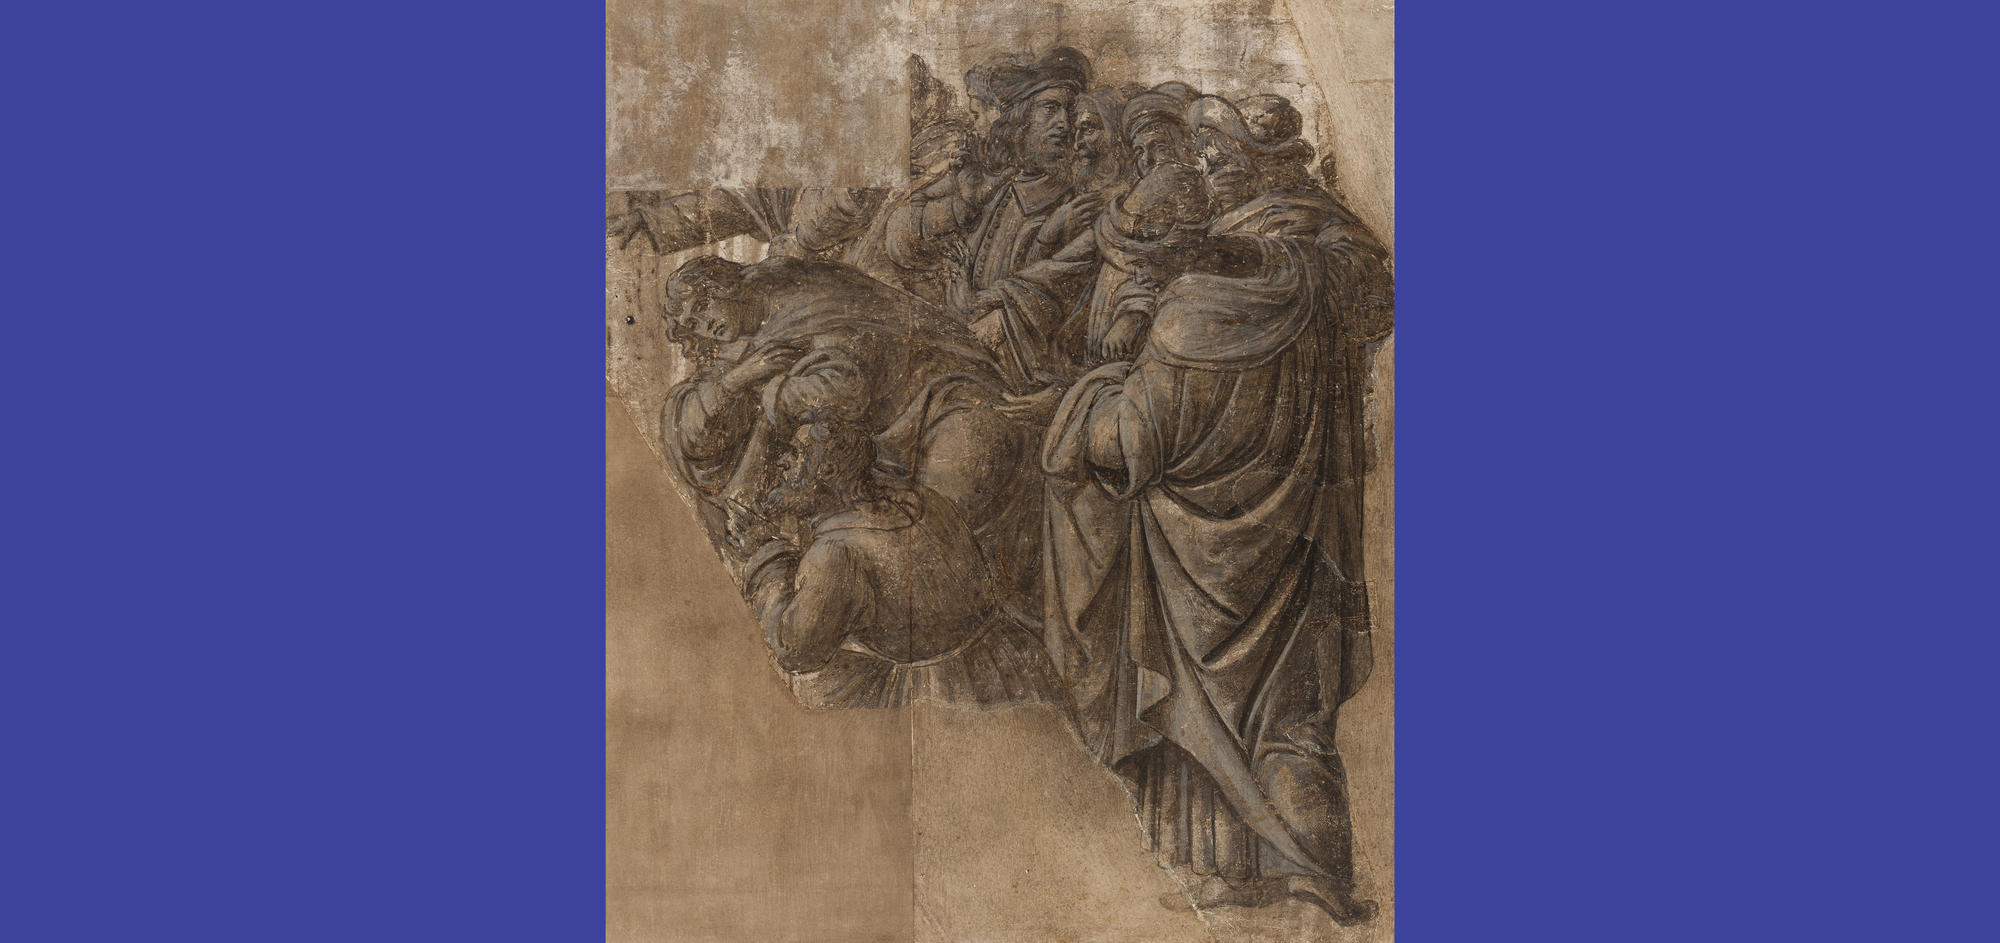 Sandro Botticelli (Italian, 1444 or 1445-1510), Men Conversing and Two Magi (two fragments of The Adoration of the Magi), about 1500. Brush and brown egg tempera, heightened with white, over charcoal or chalk on prepared linen, 44.2 x 37.1 cm. The Fitzwilliam Museum, Cambridge © The Fitzwilliam Museum, Cambridge